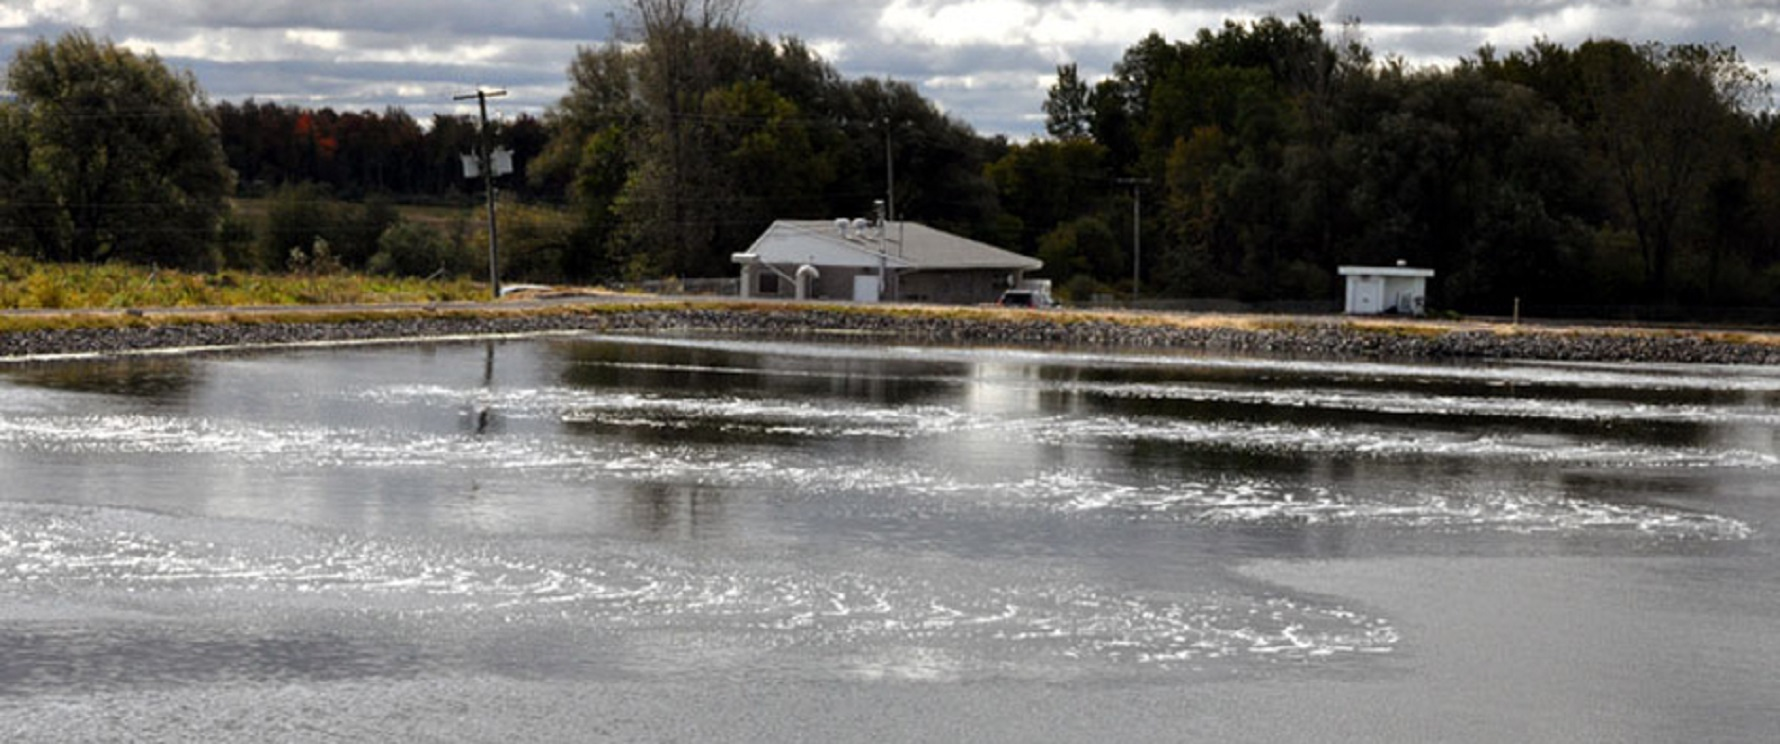 OctoAir-10 for wastewater aeration